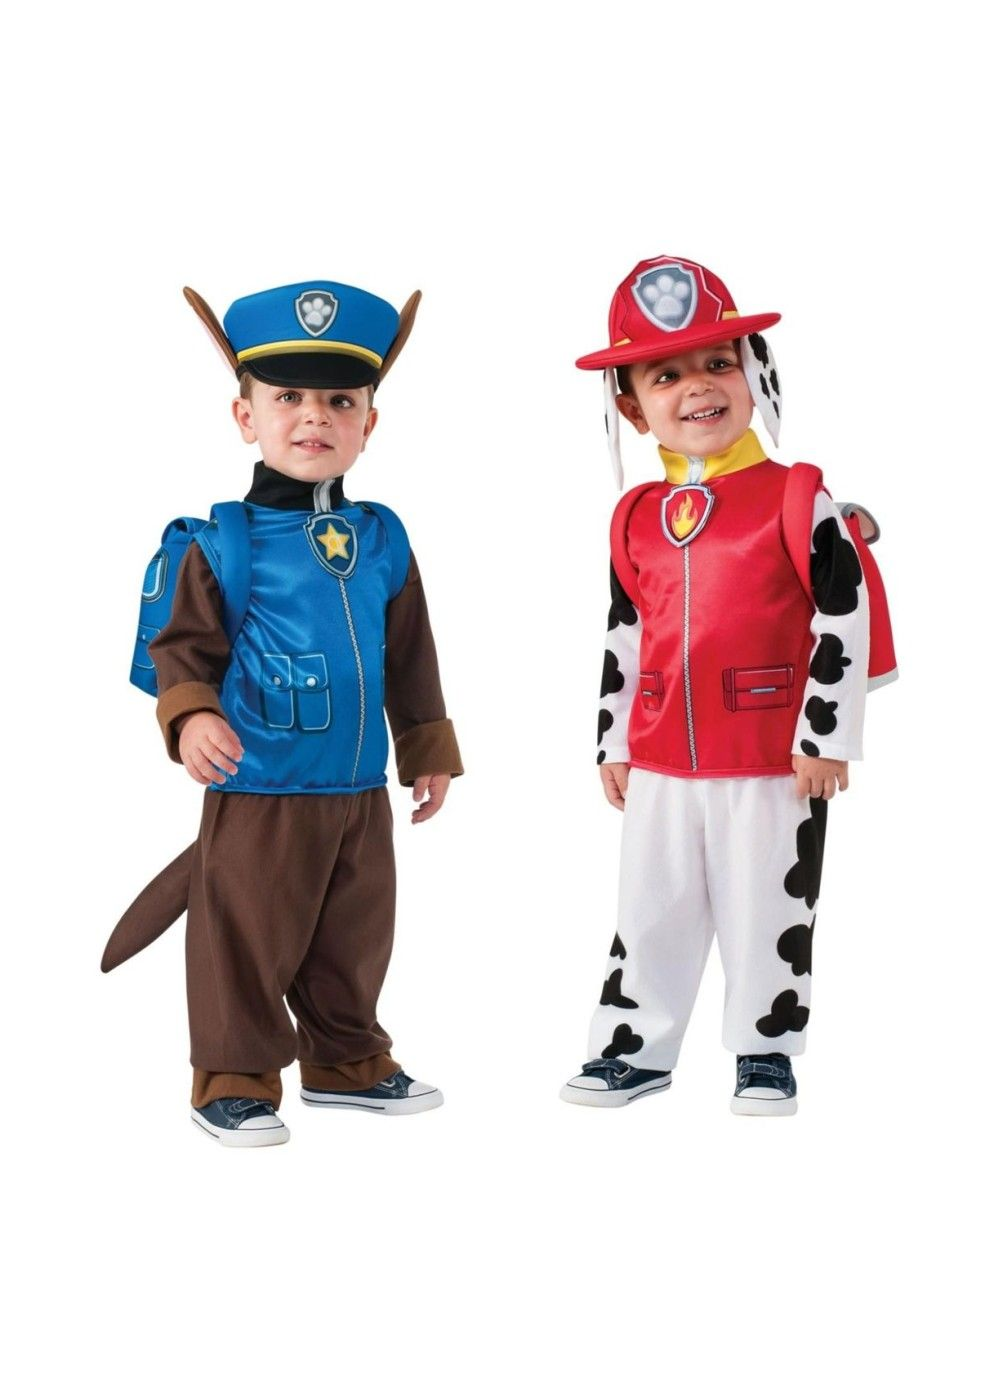 15 'Paw Patrol' Costumes That'll Get Your Child Ready for Action